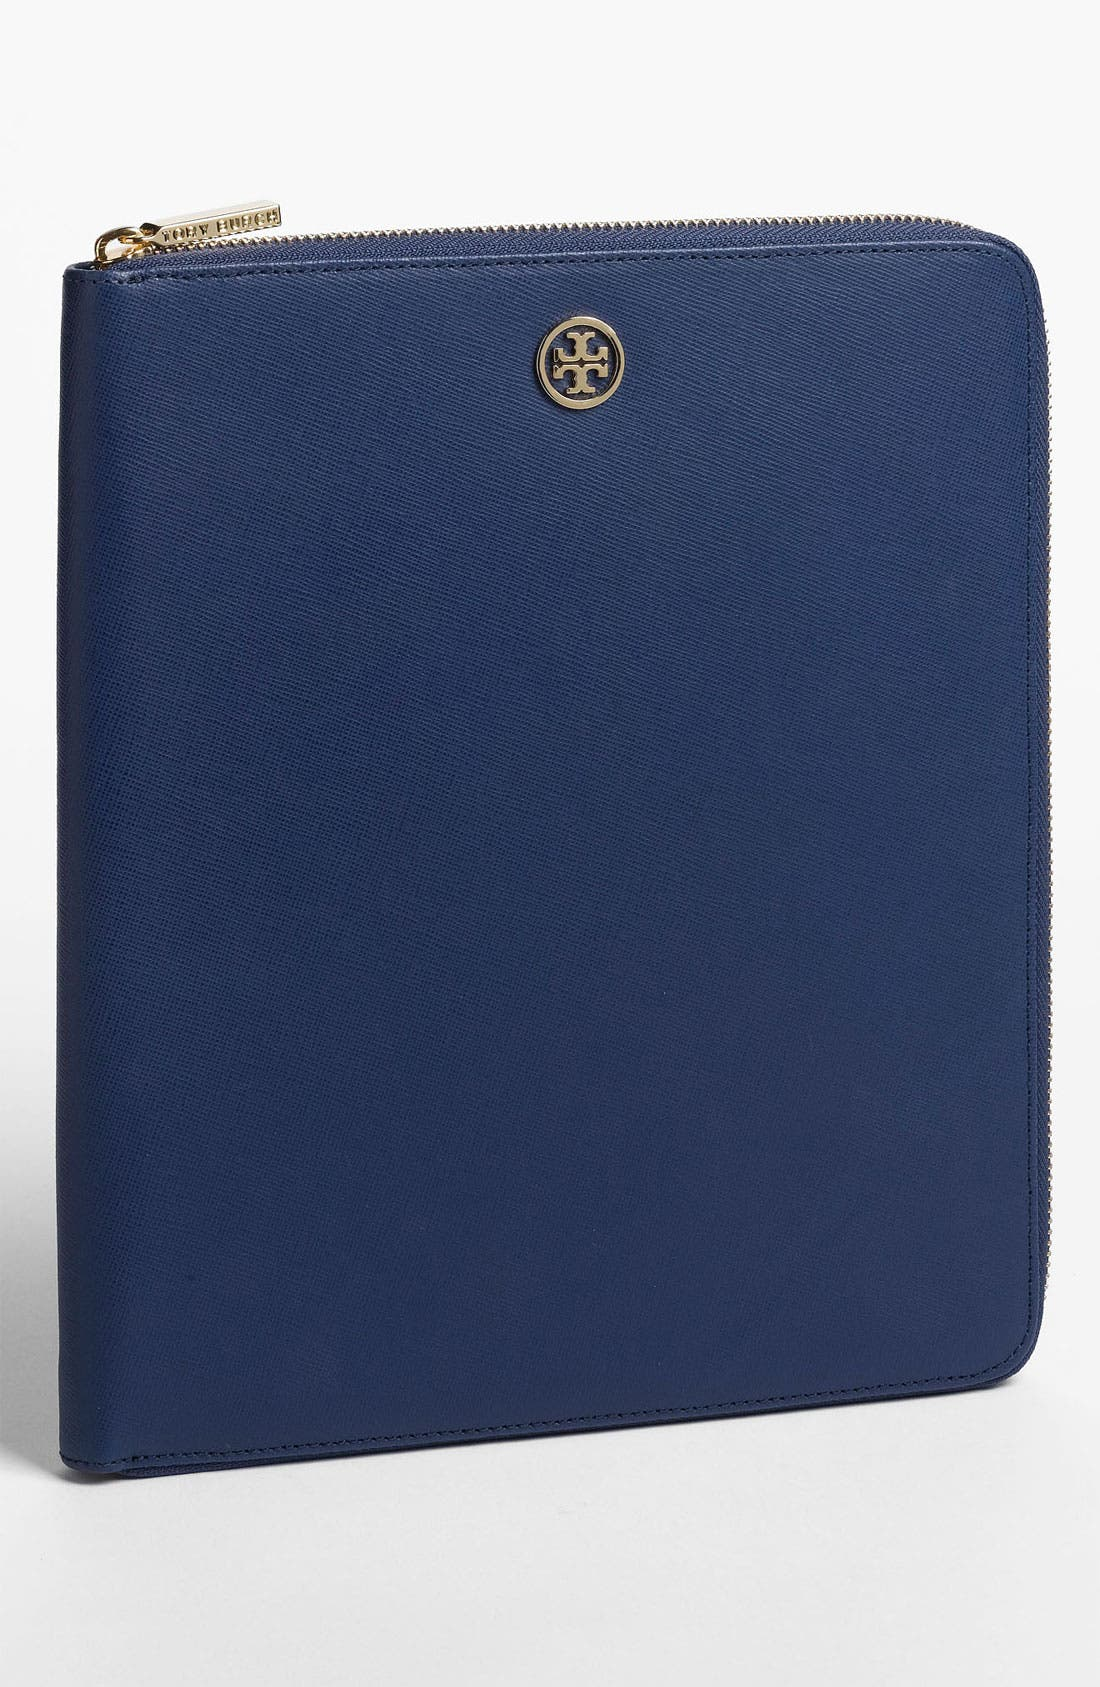 Main Image - Tory Burch Saffiano Leather iPad Case